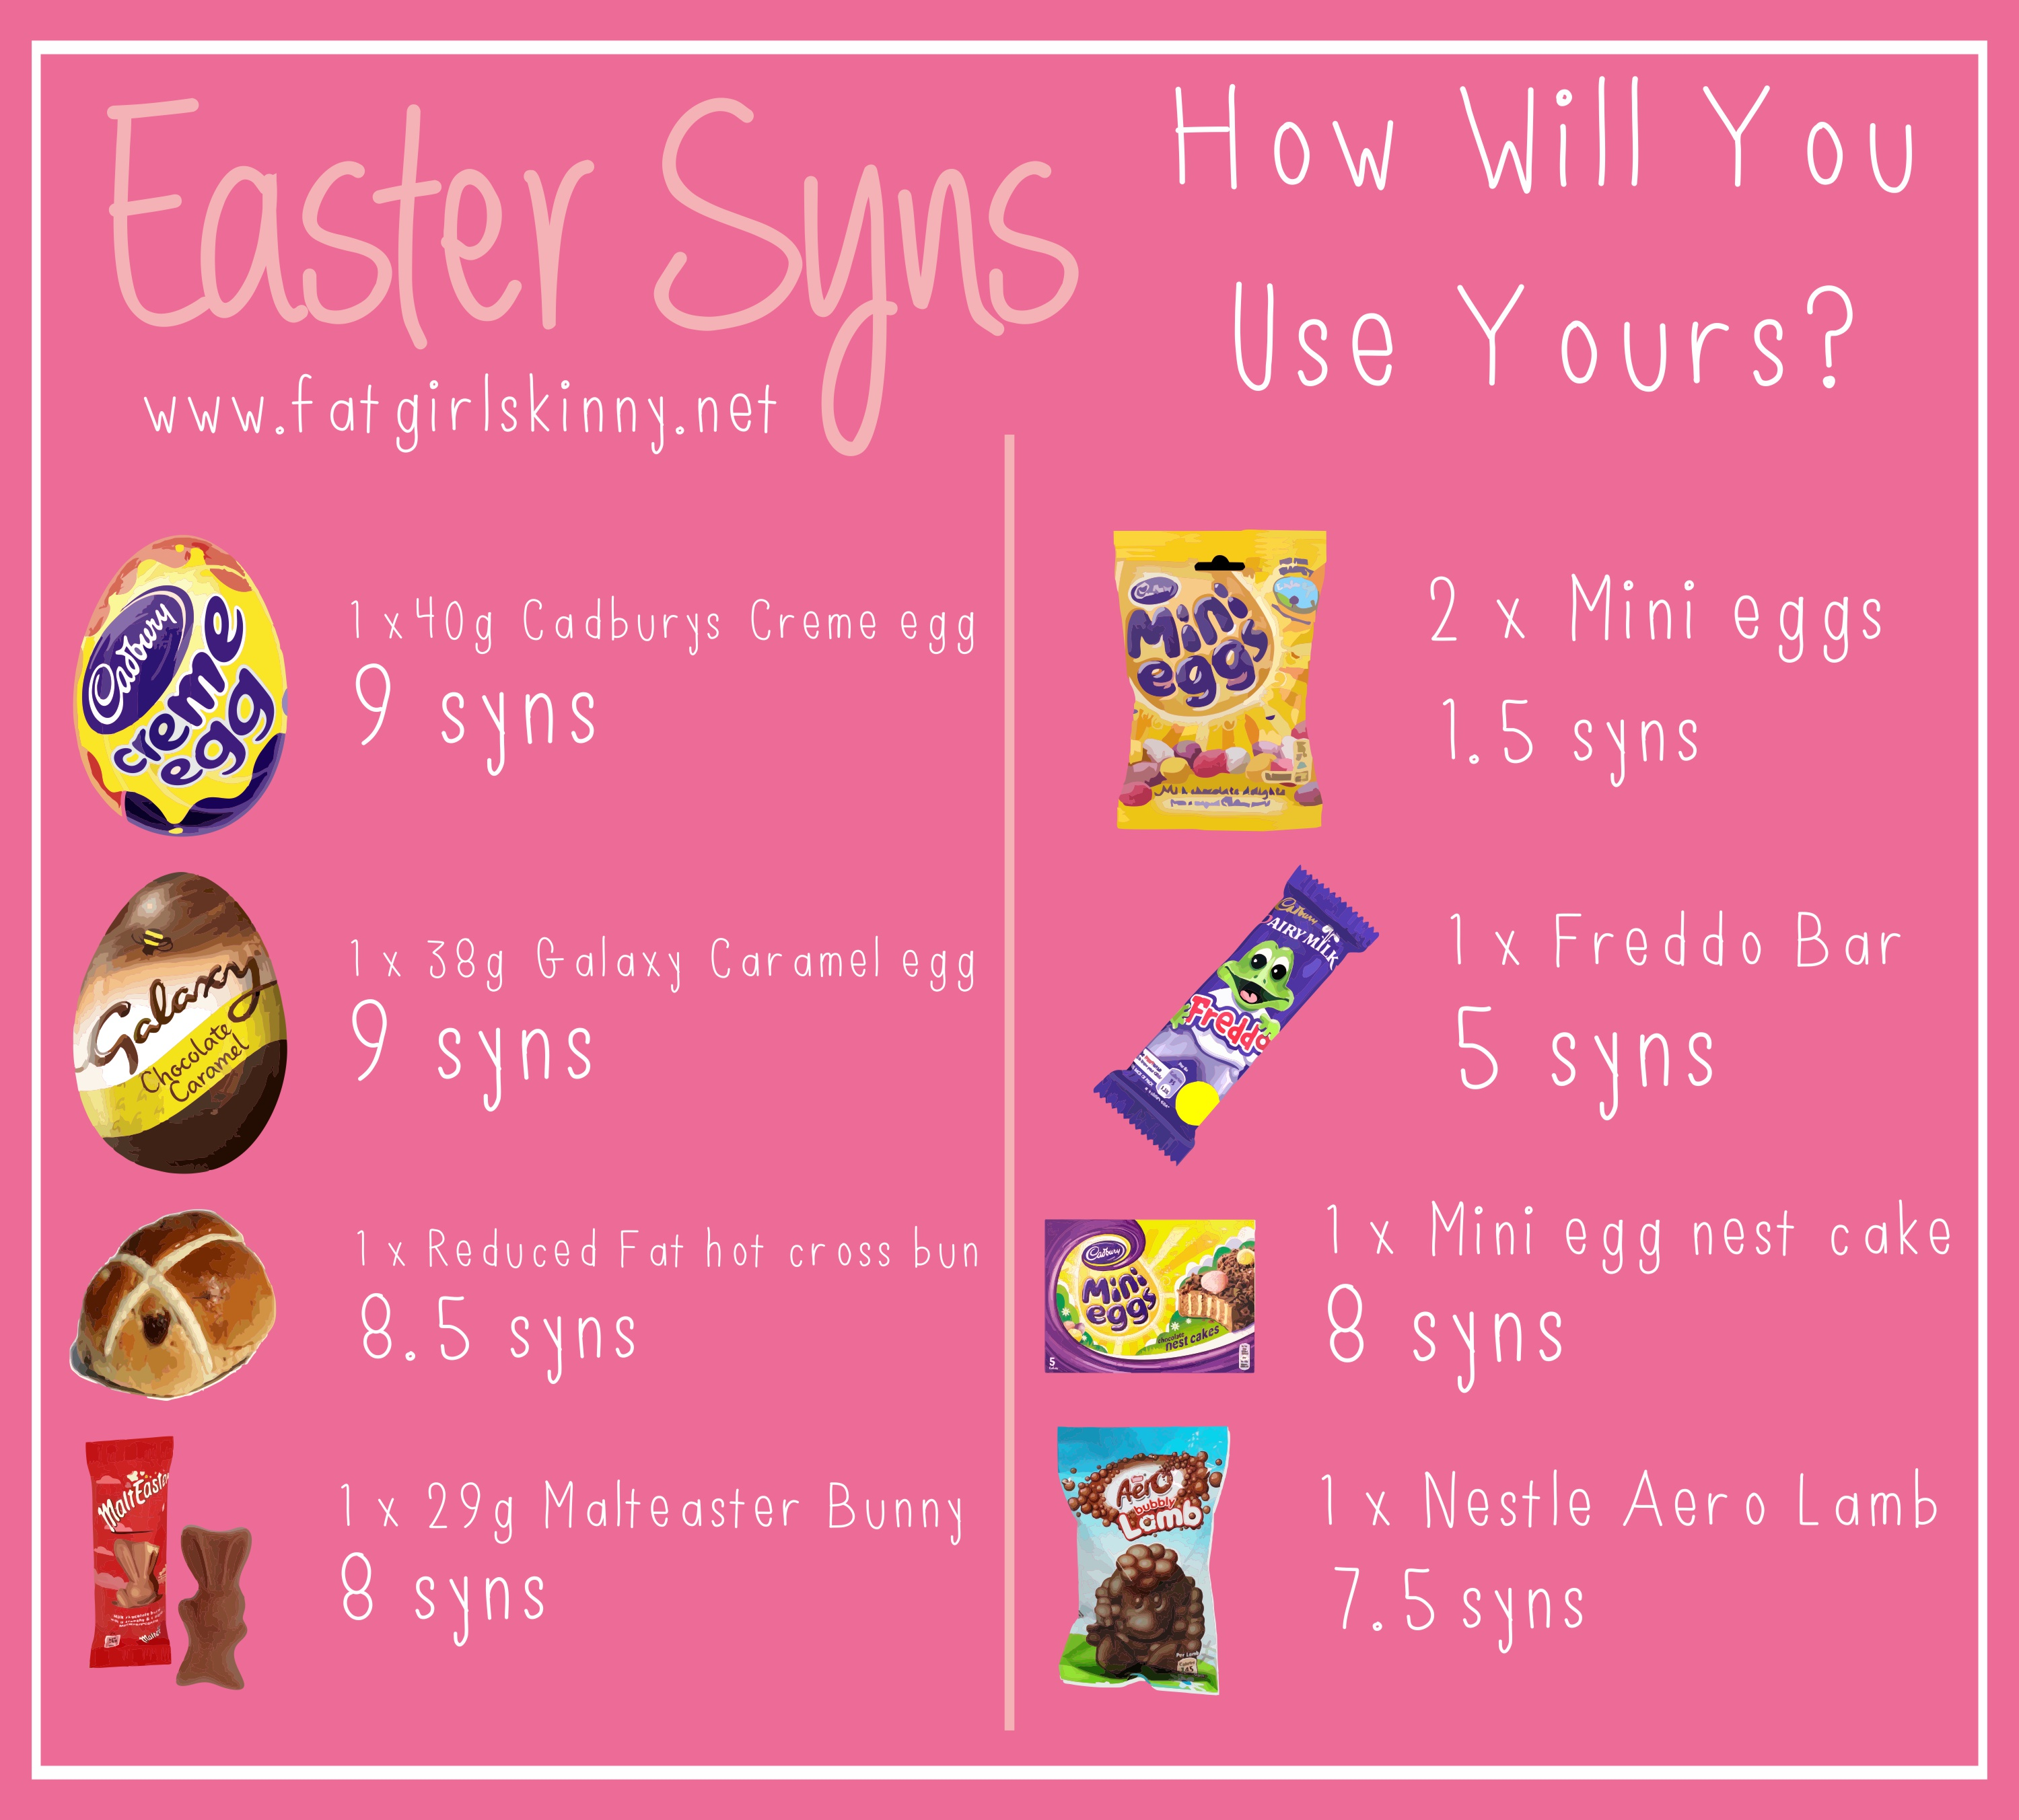 Easter Treats For Under 10 Syns Slimming World